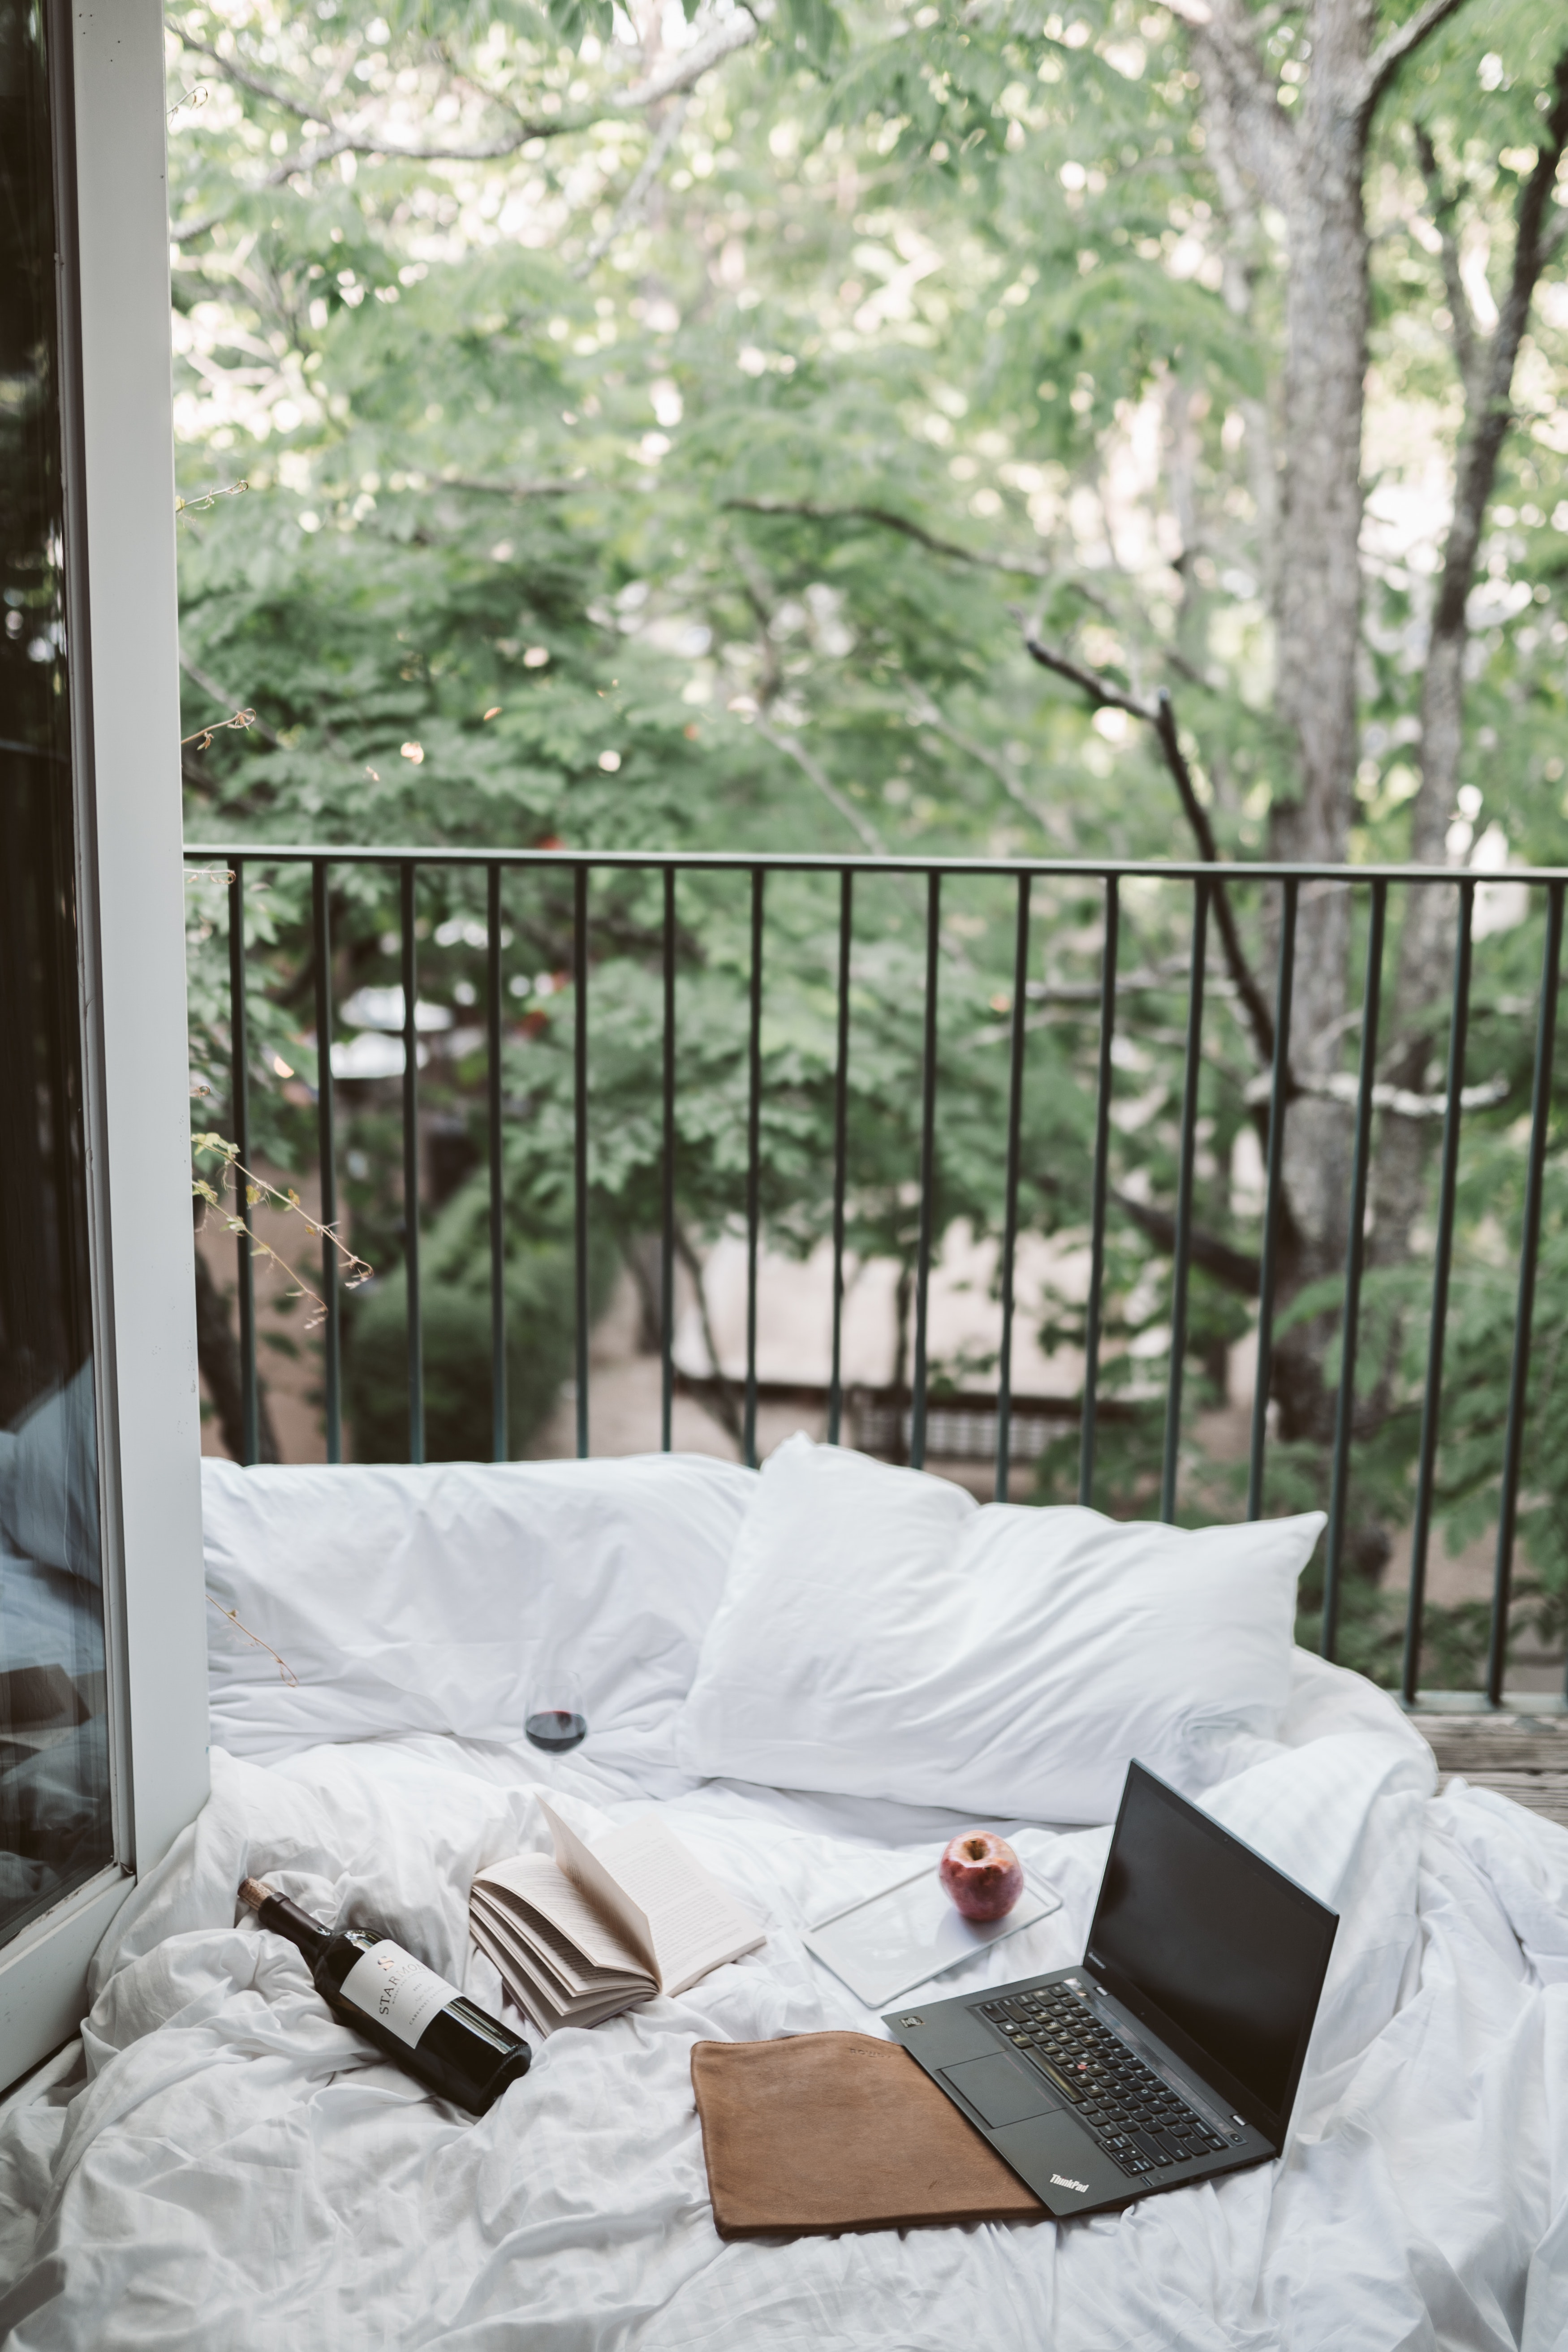 Laptop and wine bottle on cozy white settee on terrace